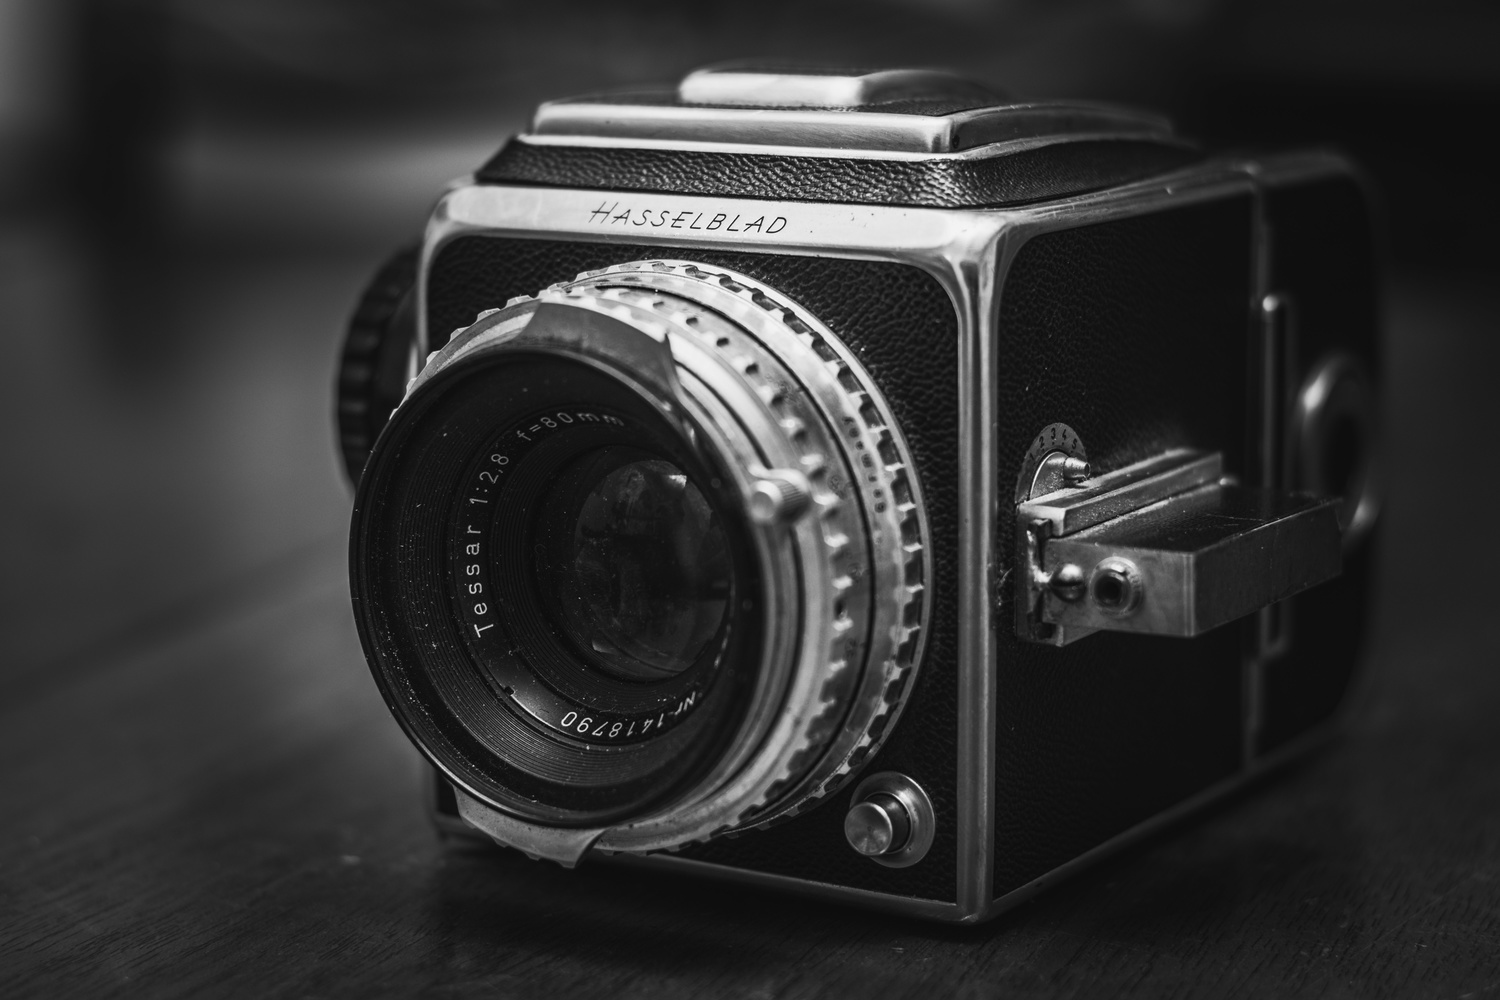 hassleblad by Chris Freeman